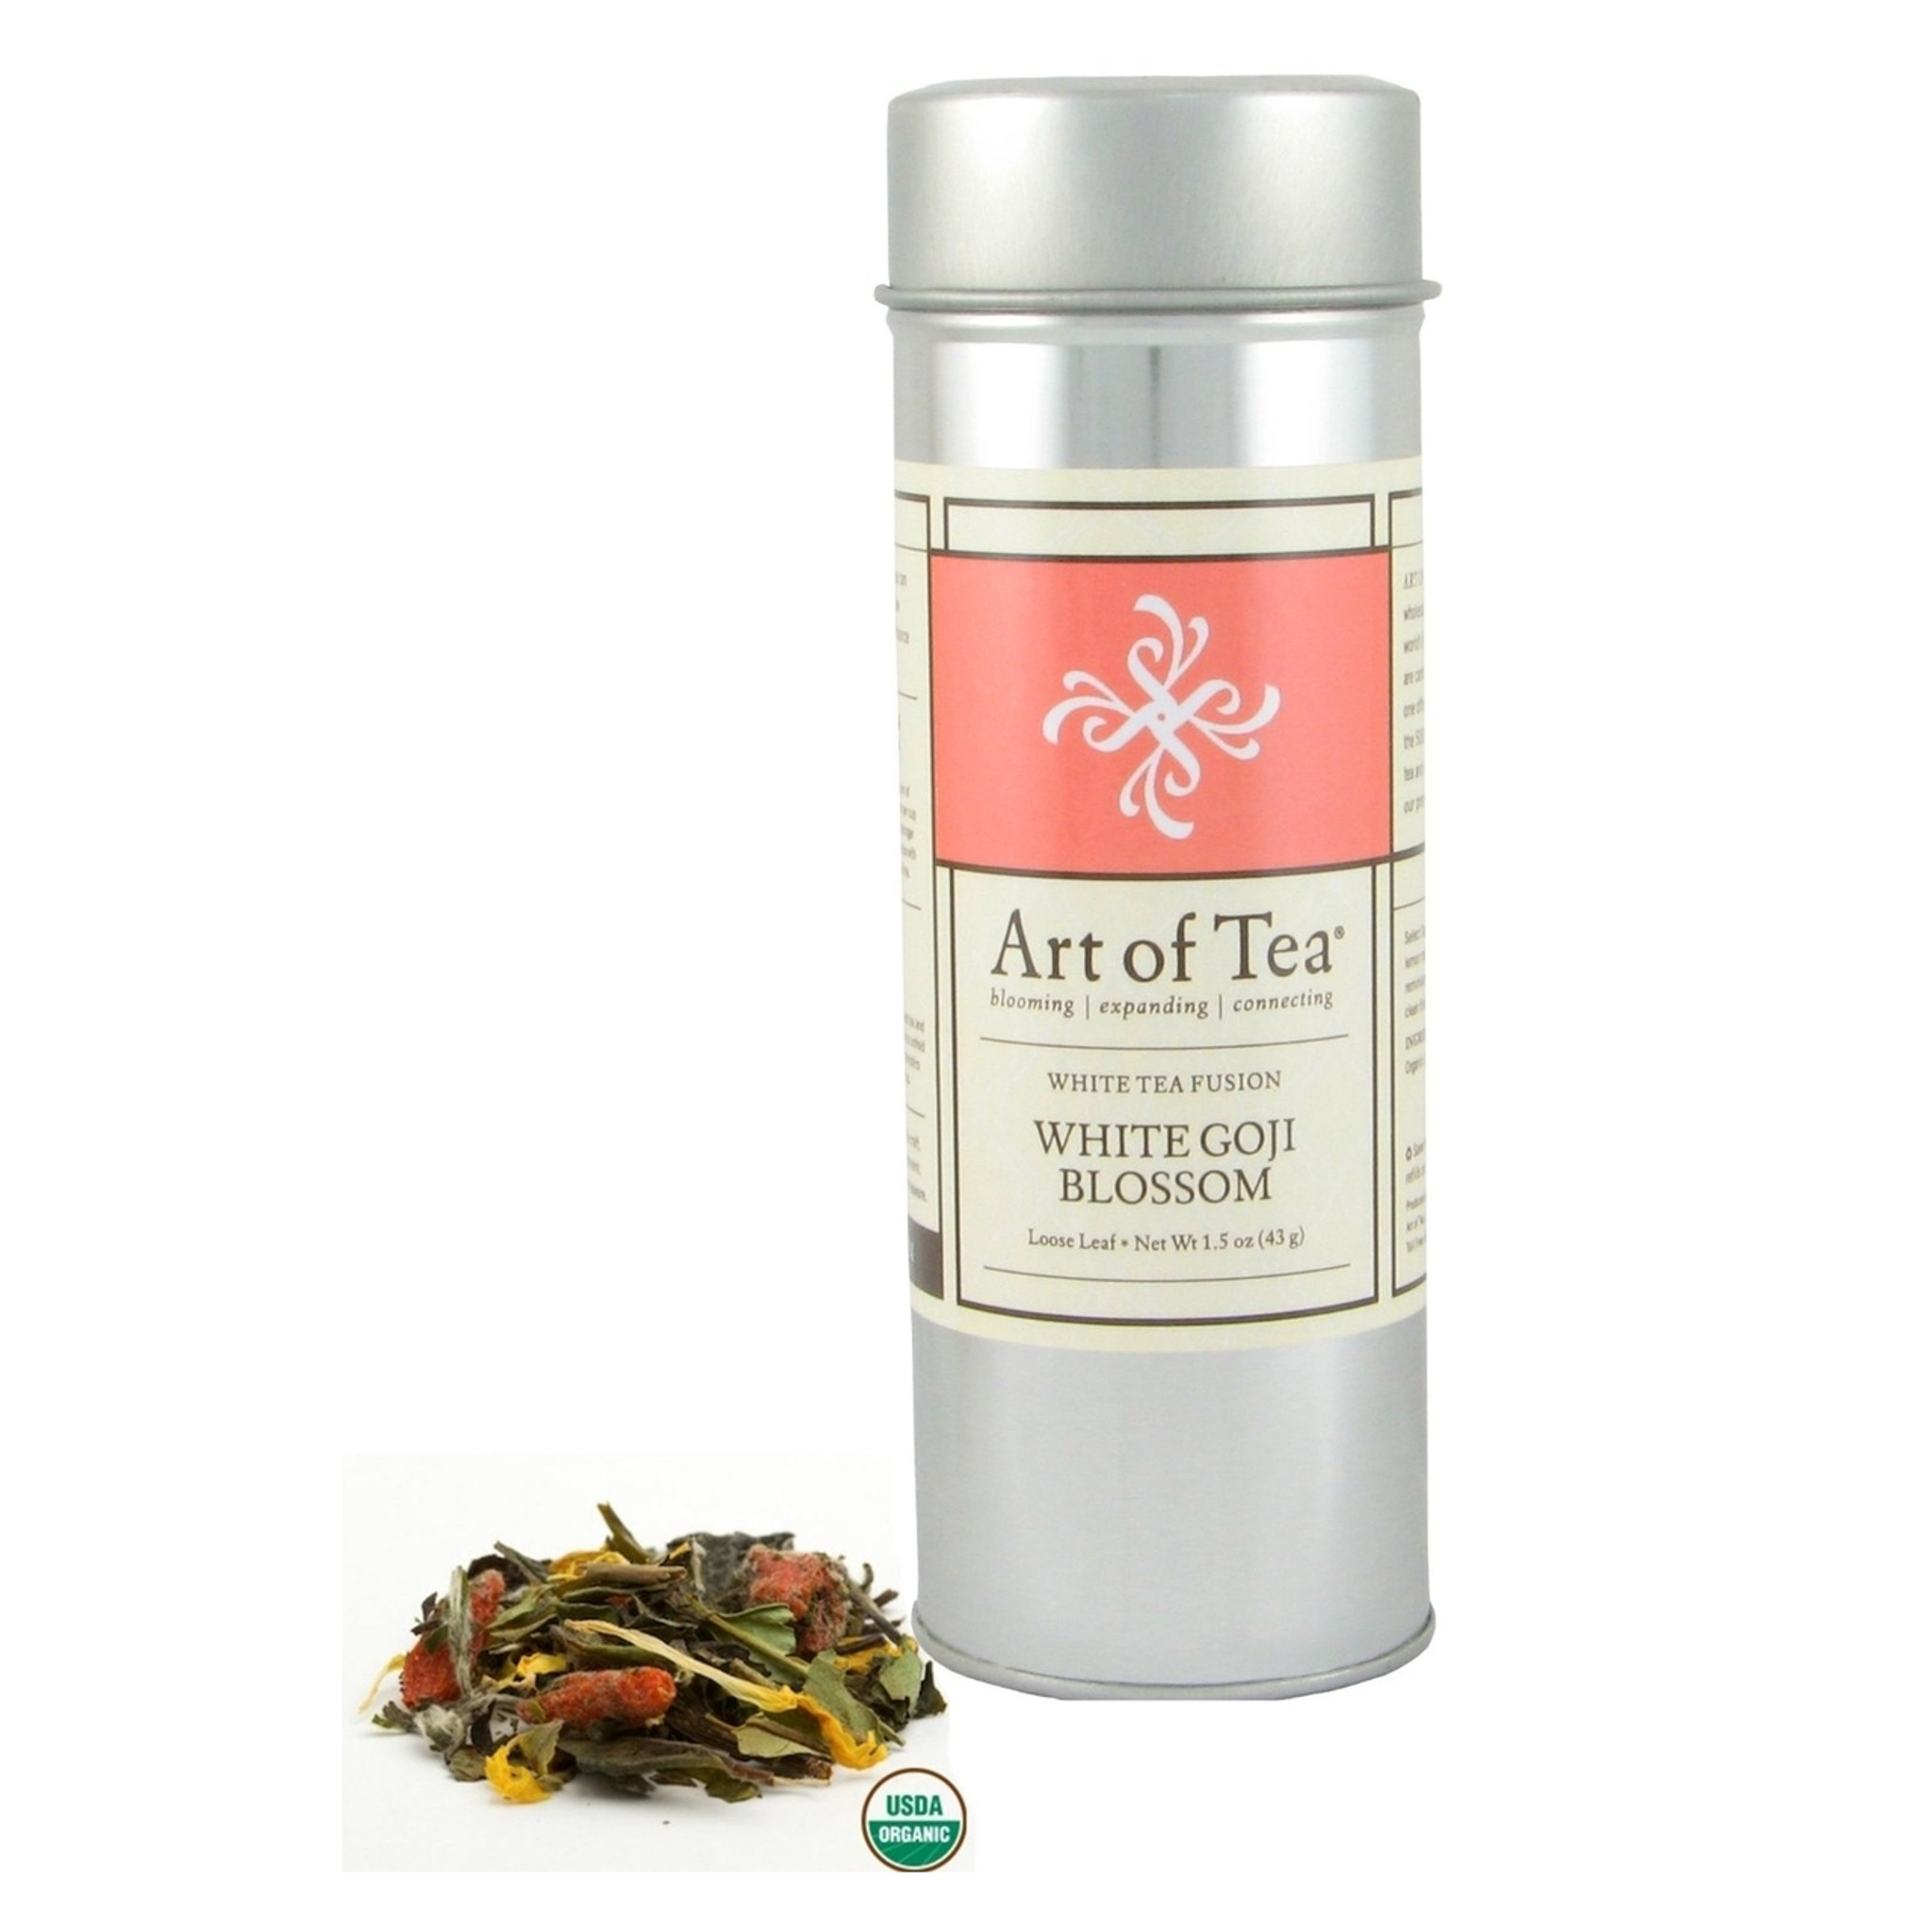 Art Of Tea Organic White Goji Blossom White Loose Leaf Tea